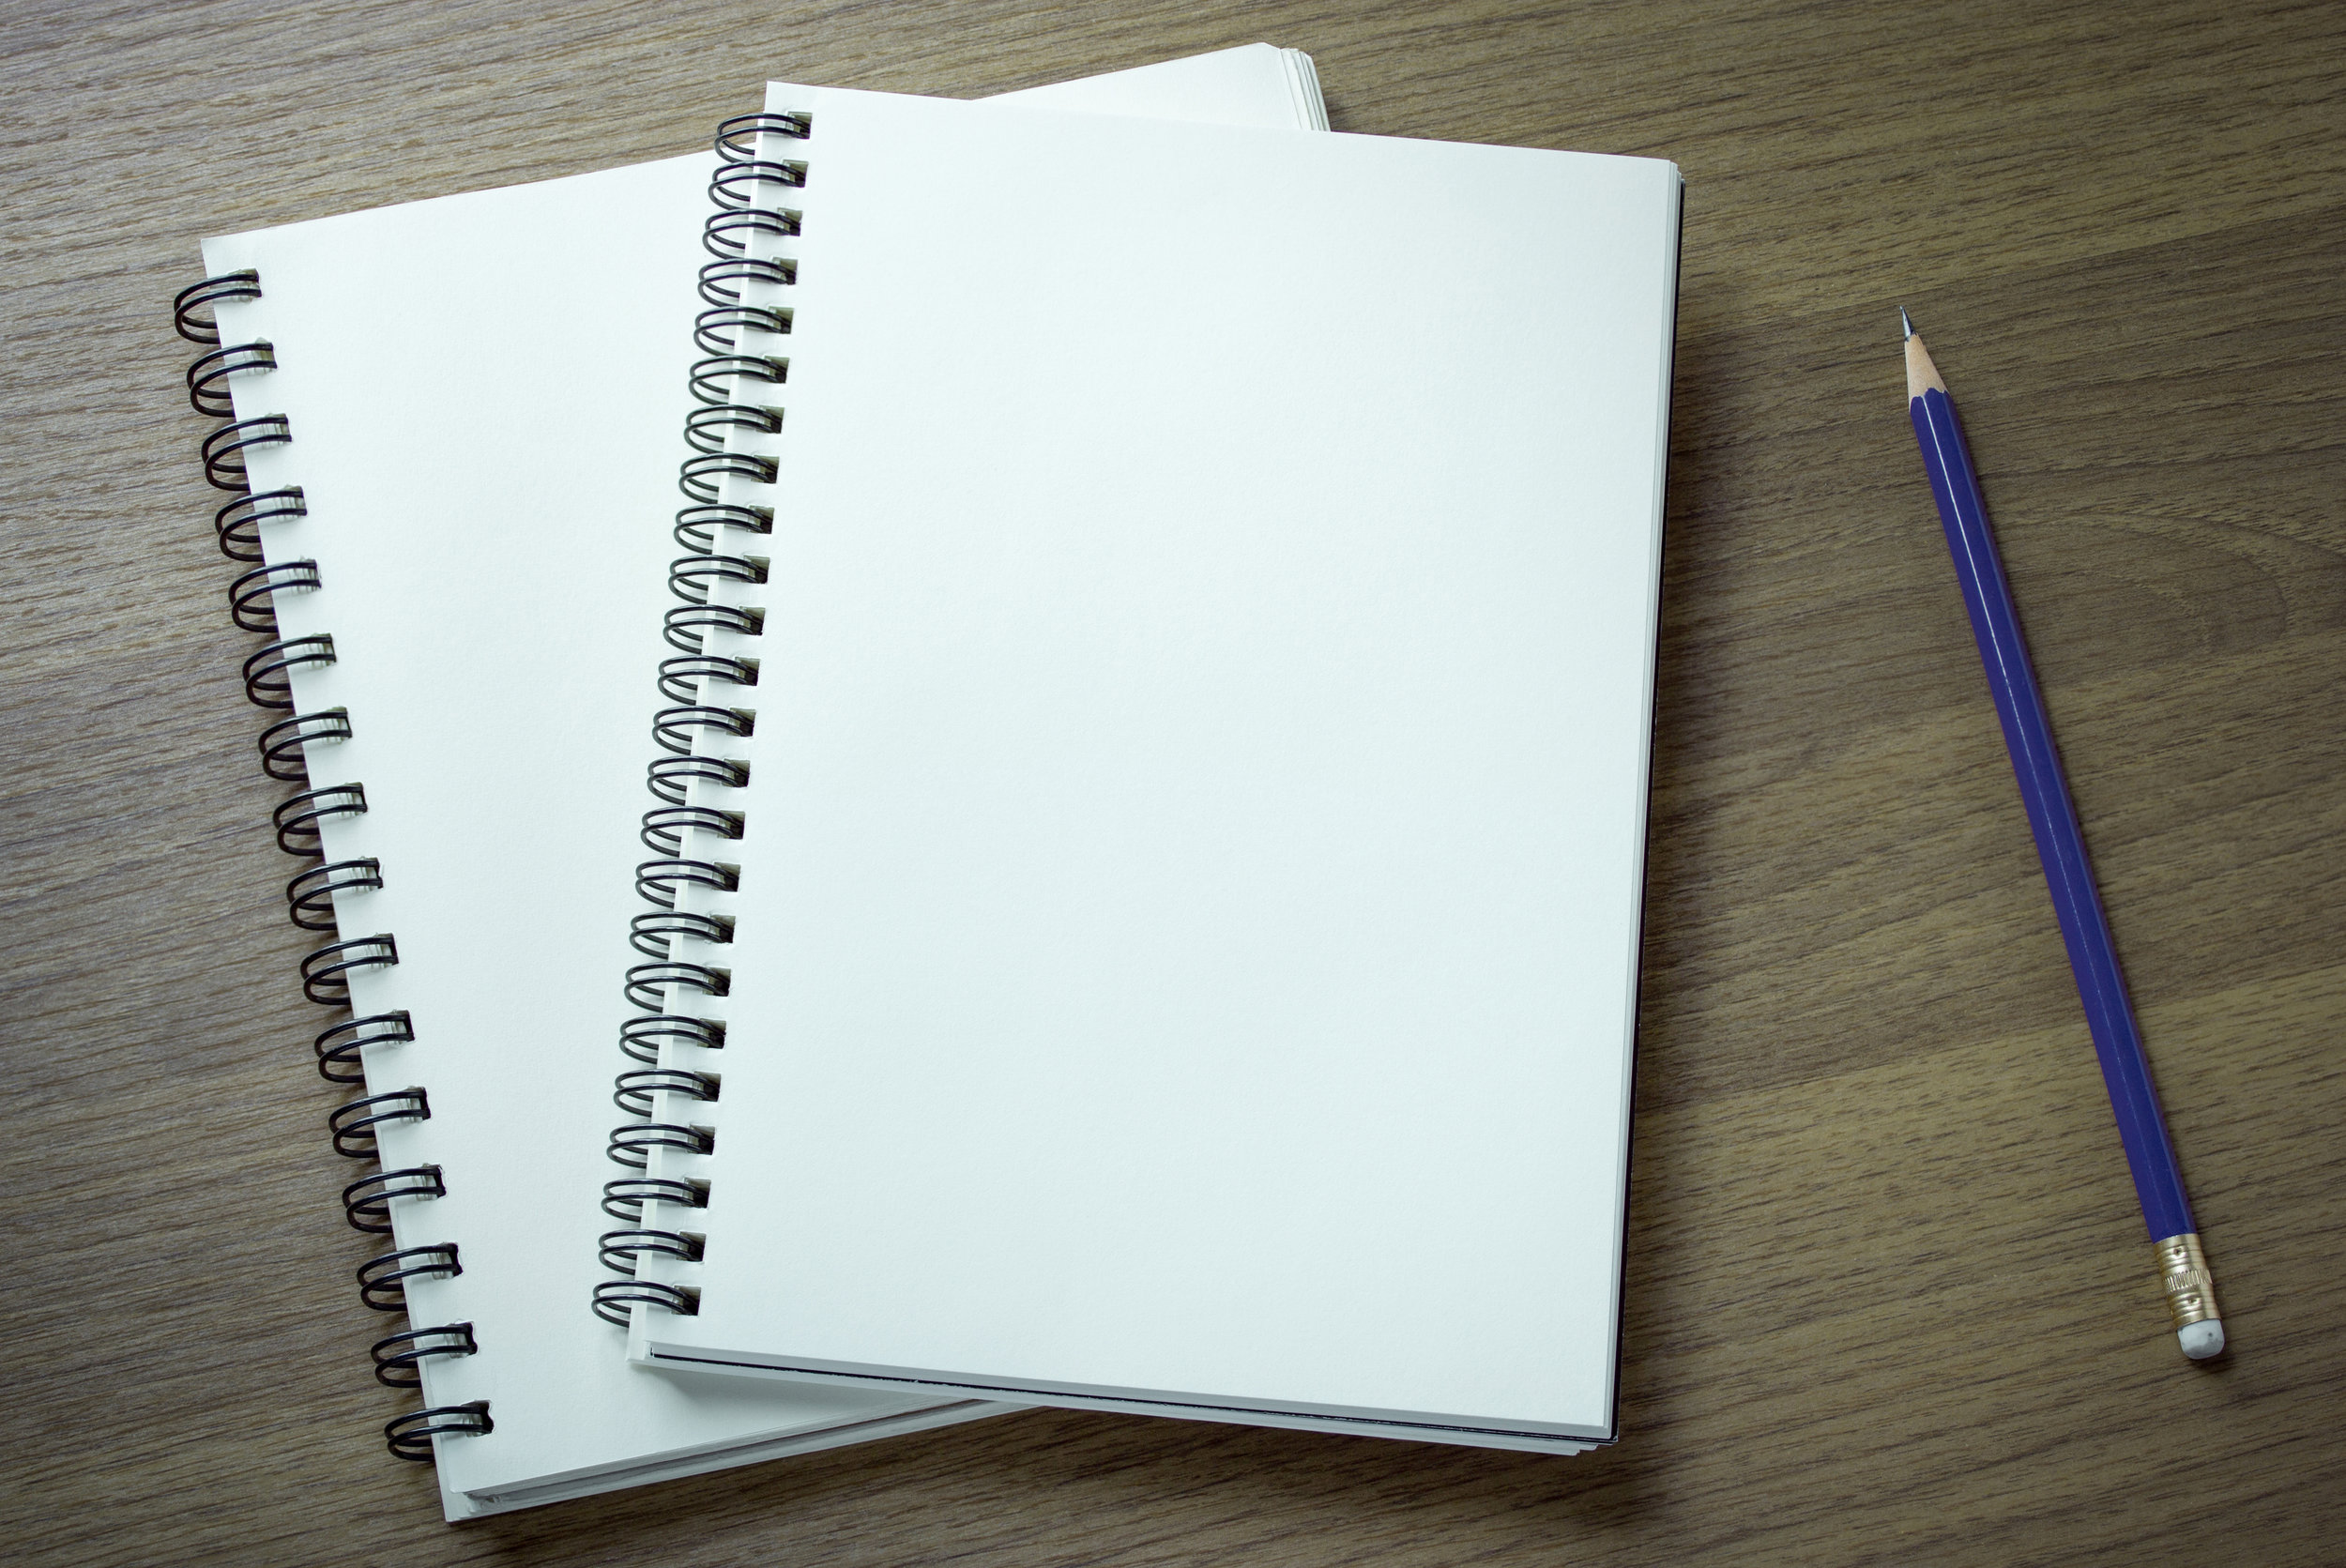 Notebook on Wood Background.jpg